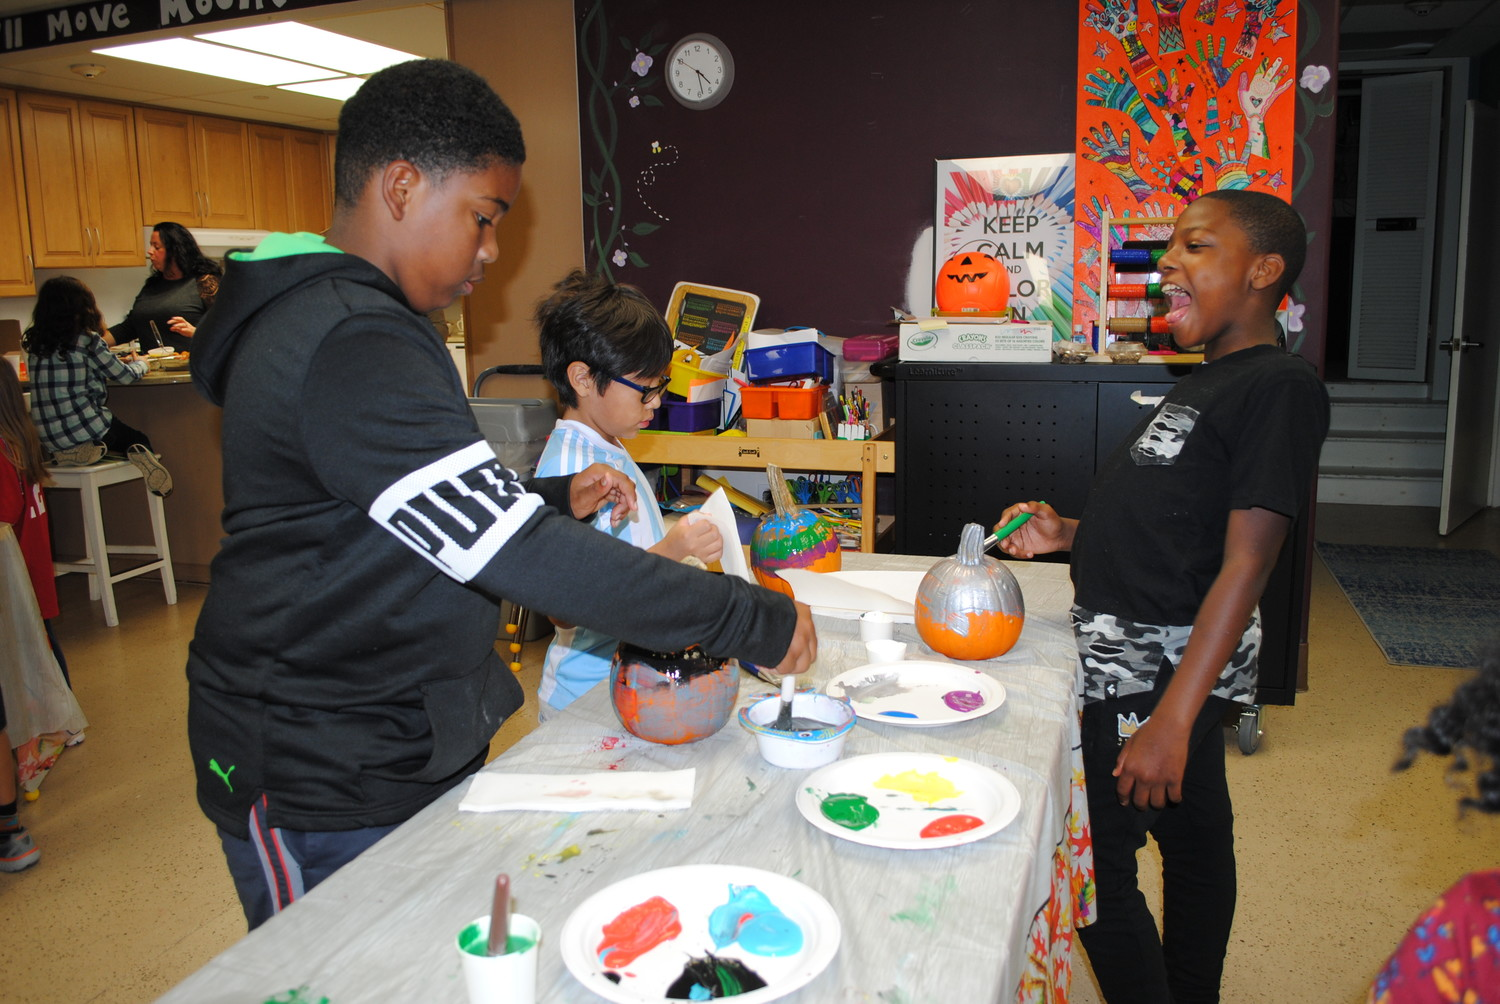 Chris Diggs, 10, Derek Polo, 7, and Derrick Brown, 10, decorated pumpkins at the Youth Bureau's Lights on Afterschool event.